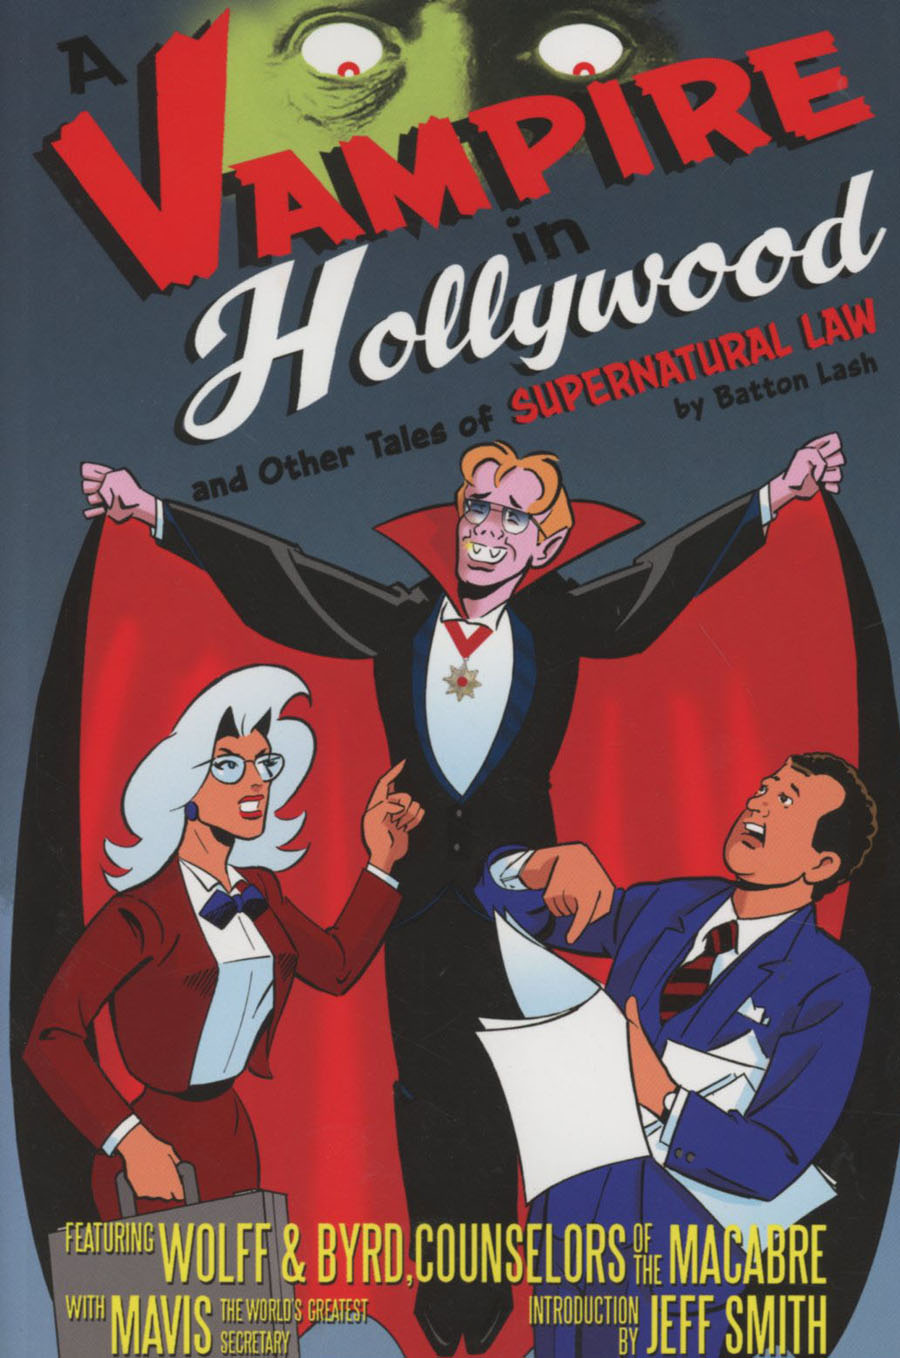 Supernatural Law A Vampire In Hollywood And Other Tales Of Supernatural Law TP